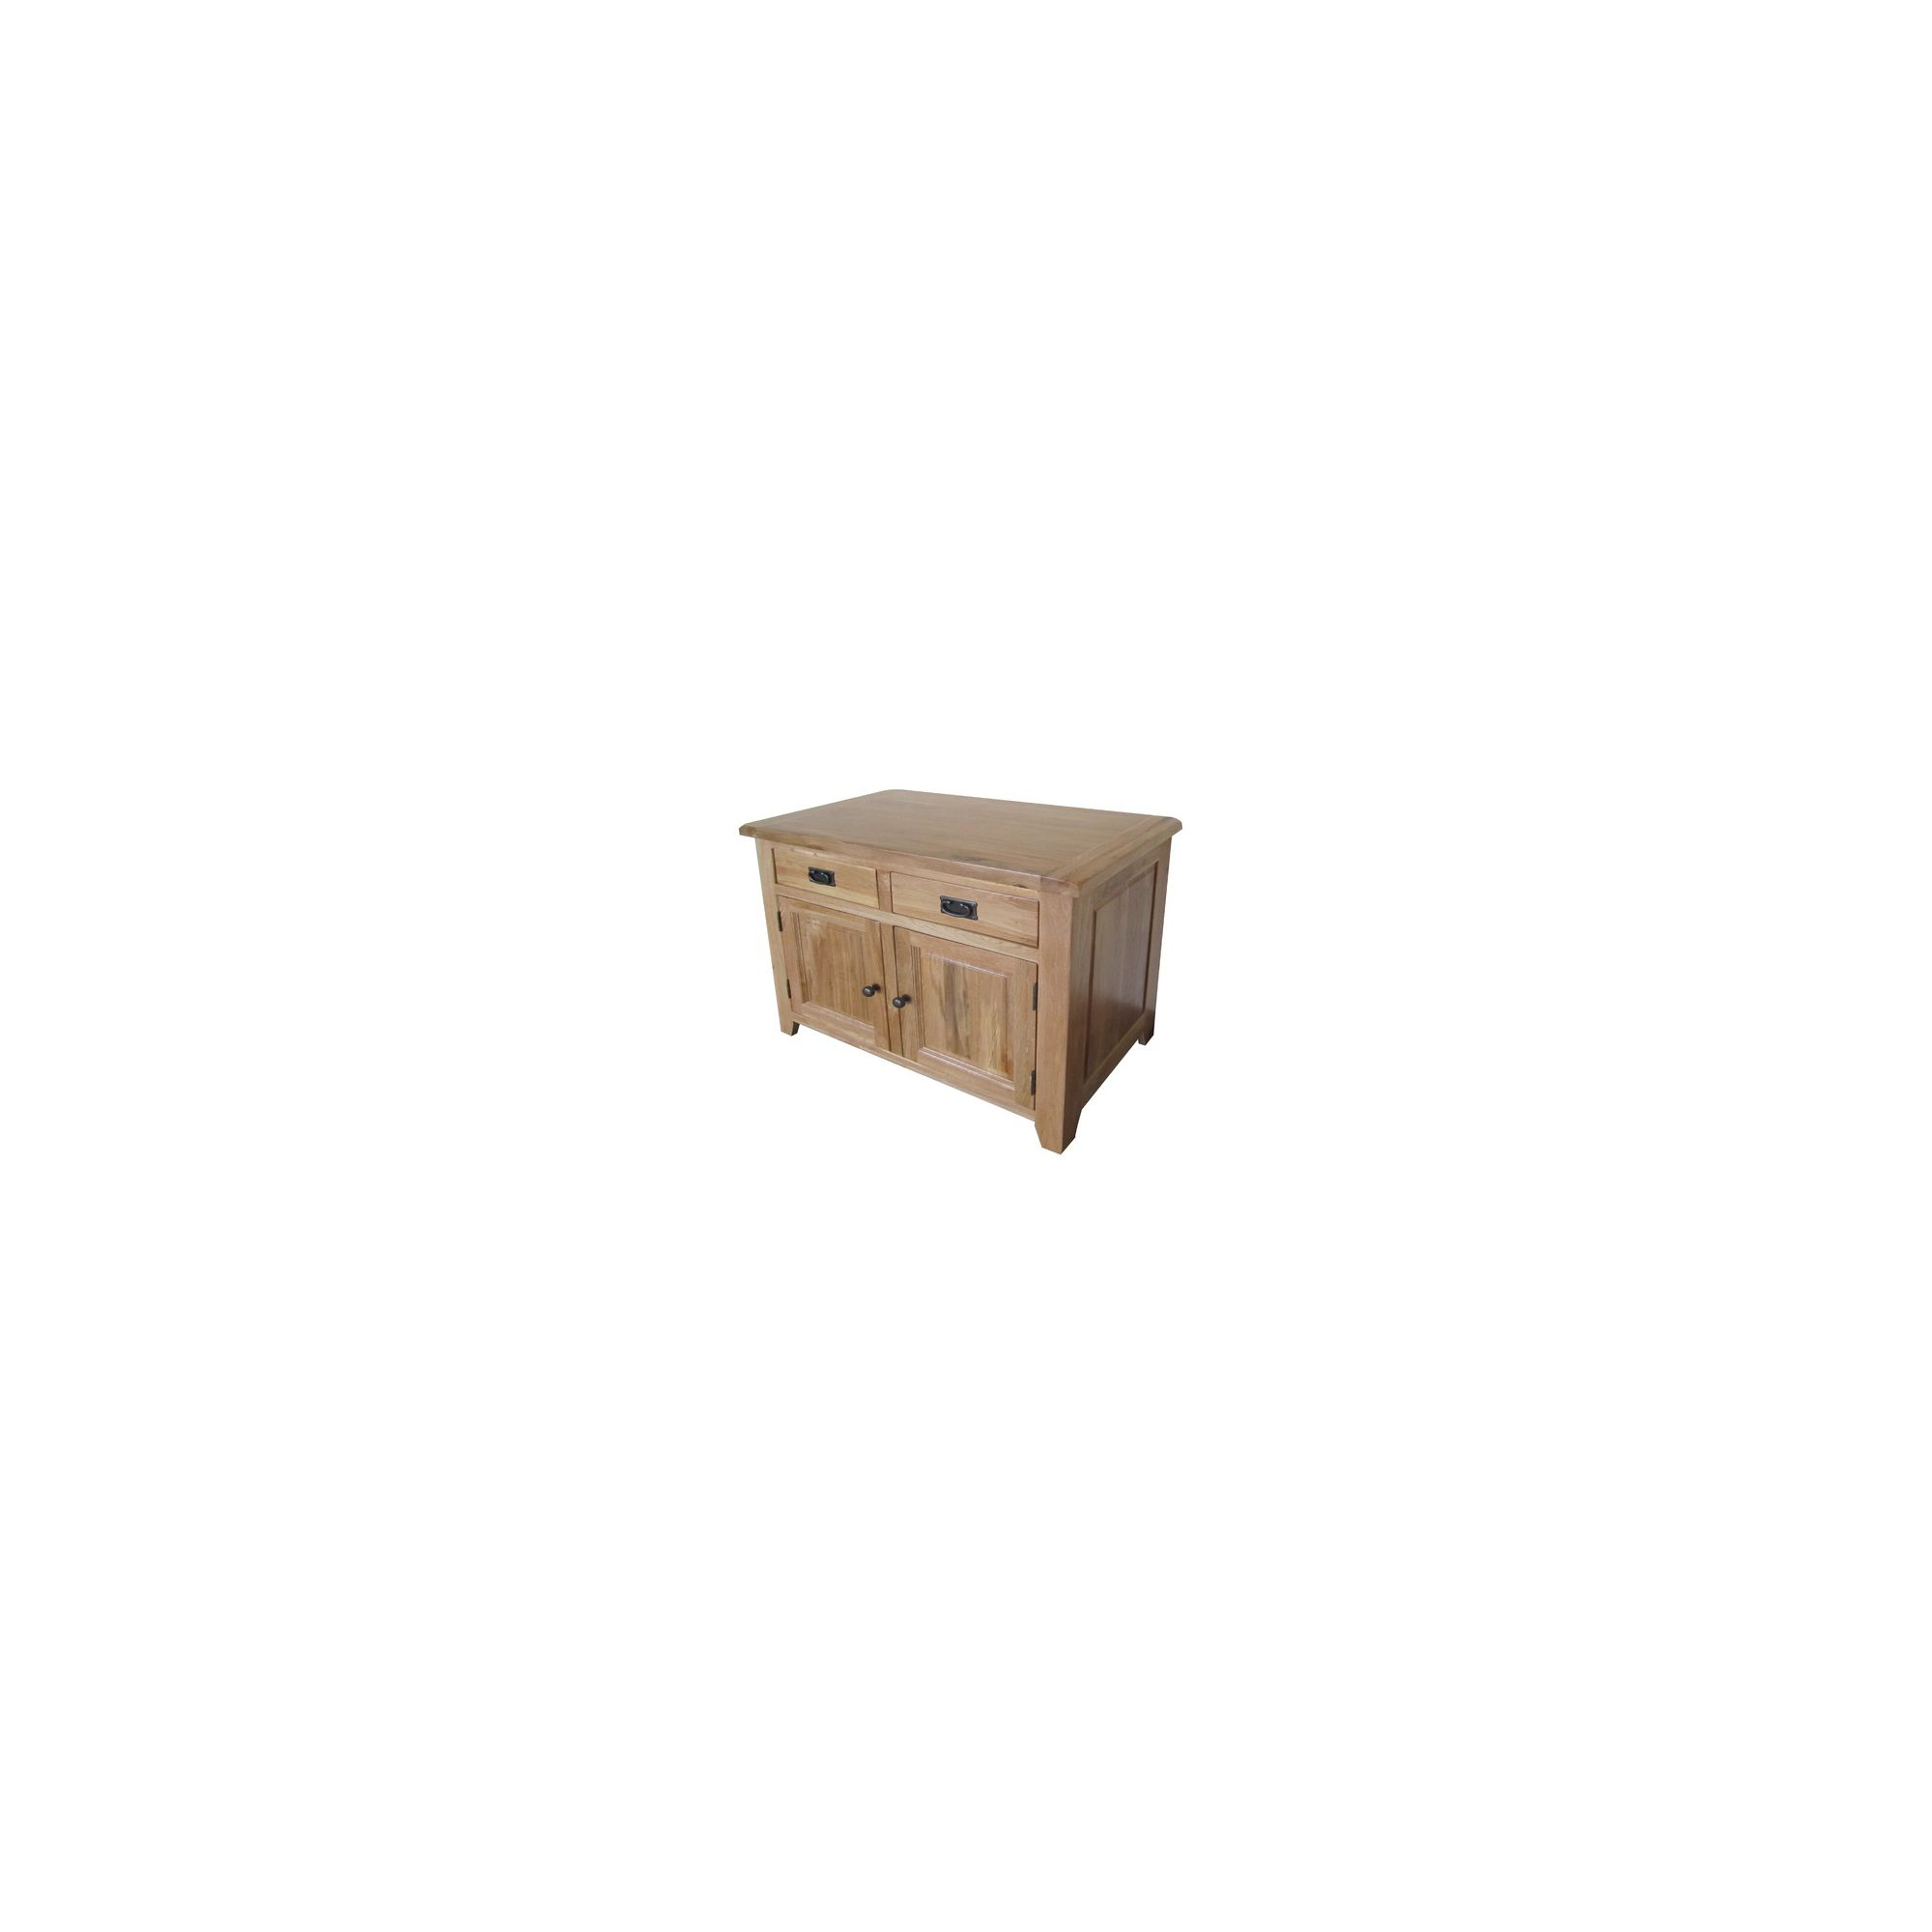 Alterton Furniture Barcelona 2 Door 2 Drawer Sideboard at Tesco Direct